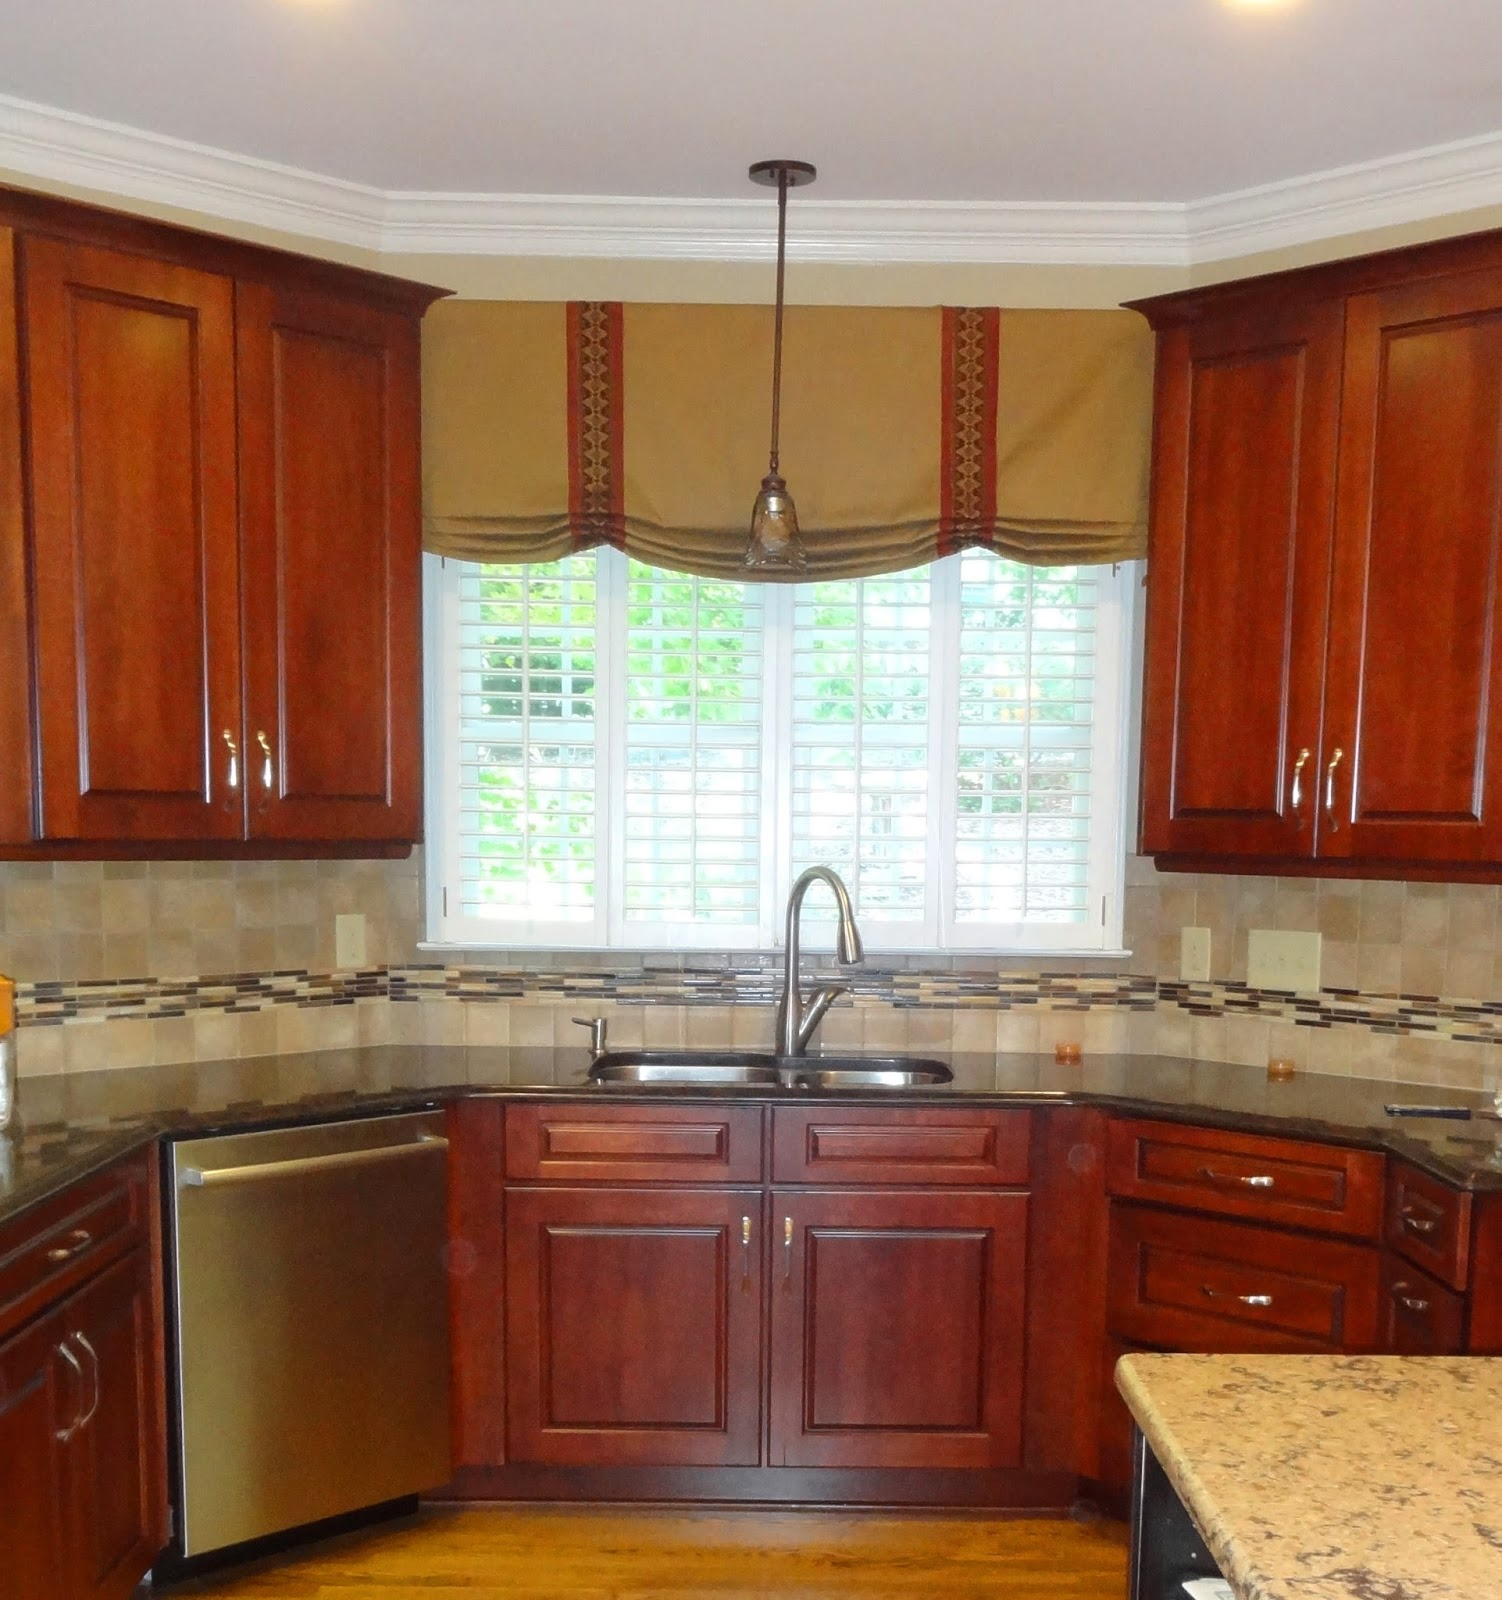 Window treatments for kitchen ideas homesfeed - Window treatment ideas for kitchen ...